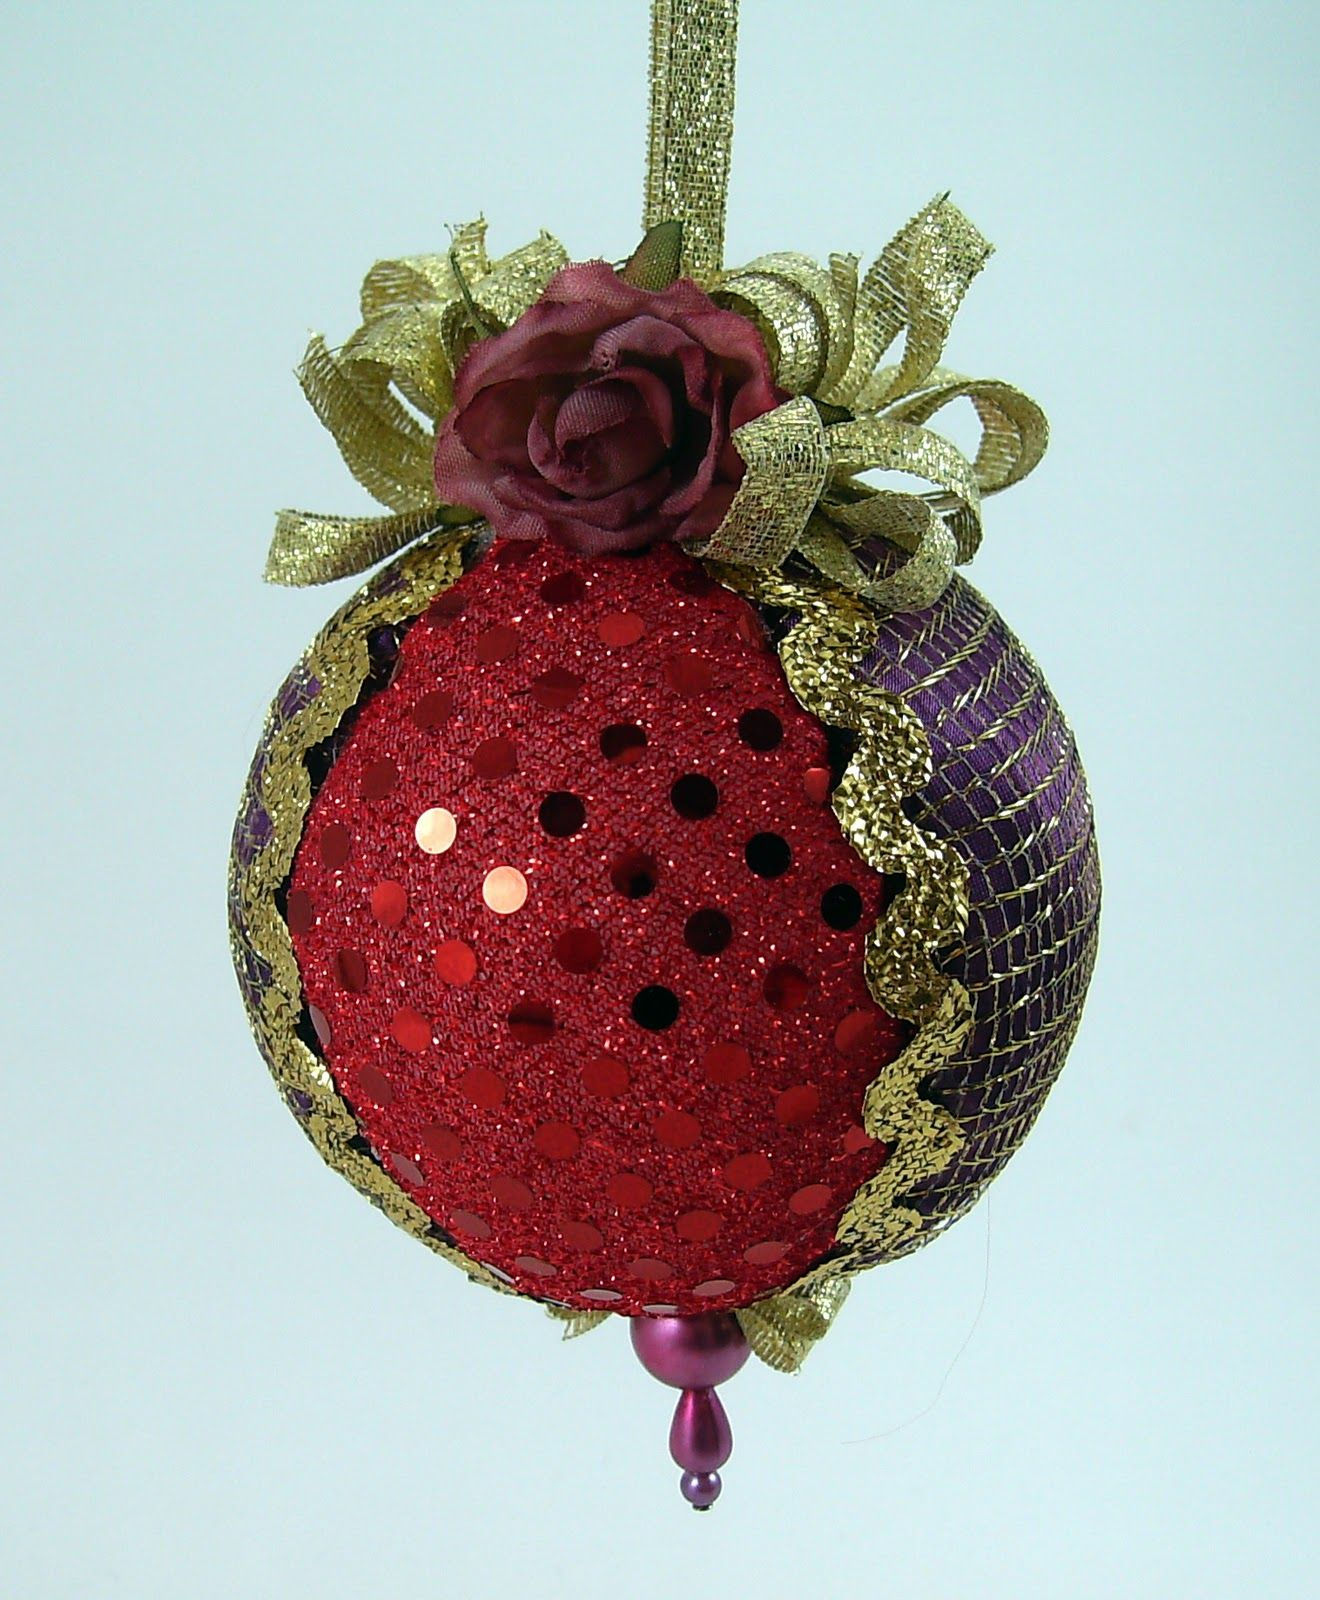 Styrofoam Ball Ornament with Fabric | Quilted Christmas Ball ...